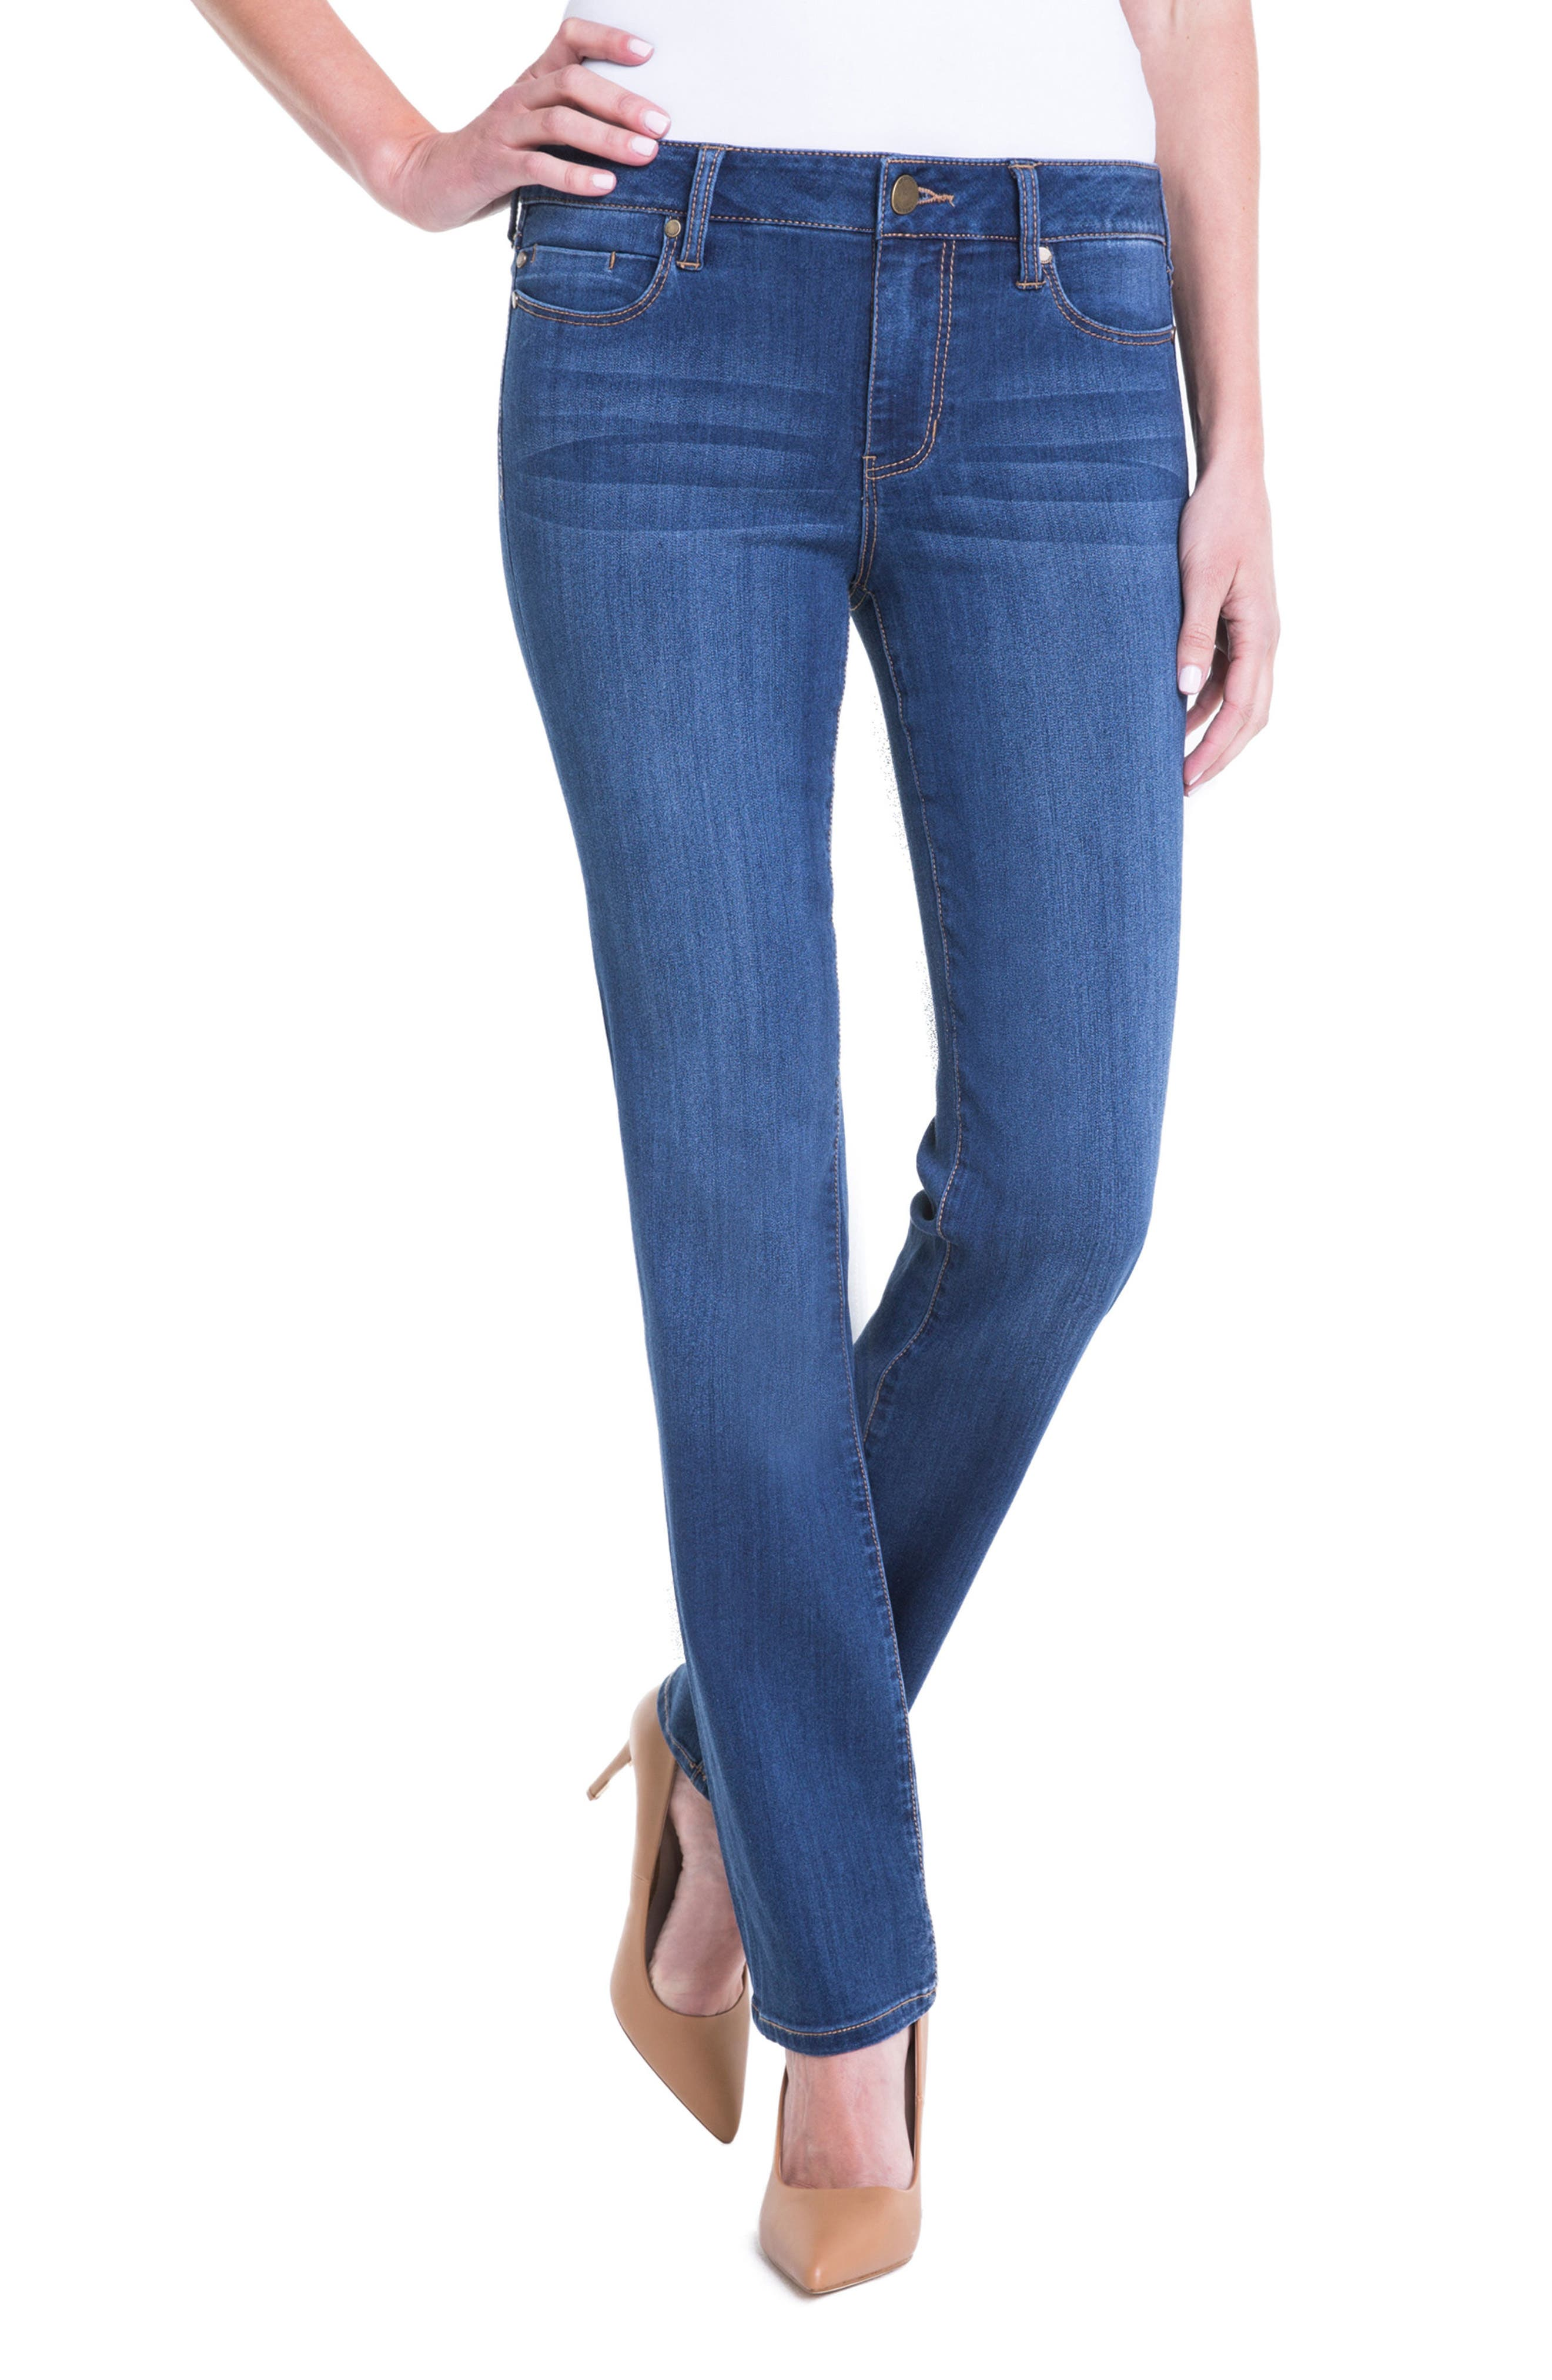 Alternate Image 1 Selected - Liverpool Jeans Company Sadie Straight Leg Jeans (Helms)